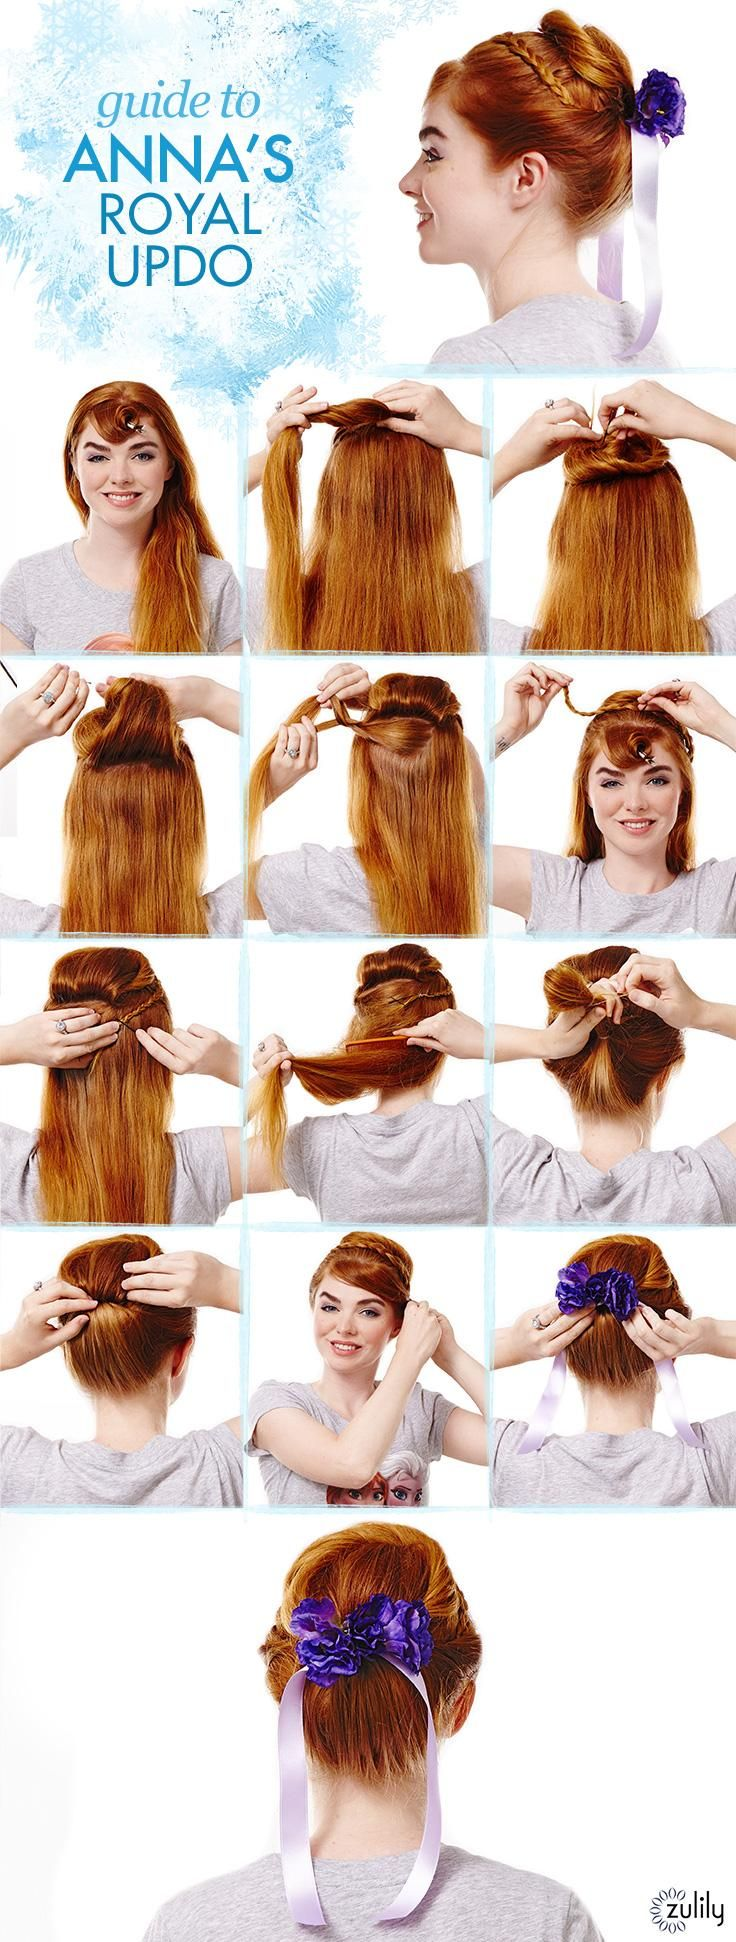 My little girl asks me CONSTANTLY to do Frozen Hairstyles for her! She wants to have an Anna Coronation Updo Hairstyle one day then she wants Elsa's Braid Hairstyle the next day, well let me tell you, I am SO EXCITED that Zulily put together these Frozen Hairstyle How To Graphics for us :) It will make my life a little easier.